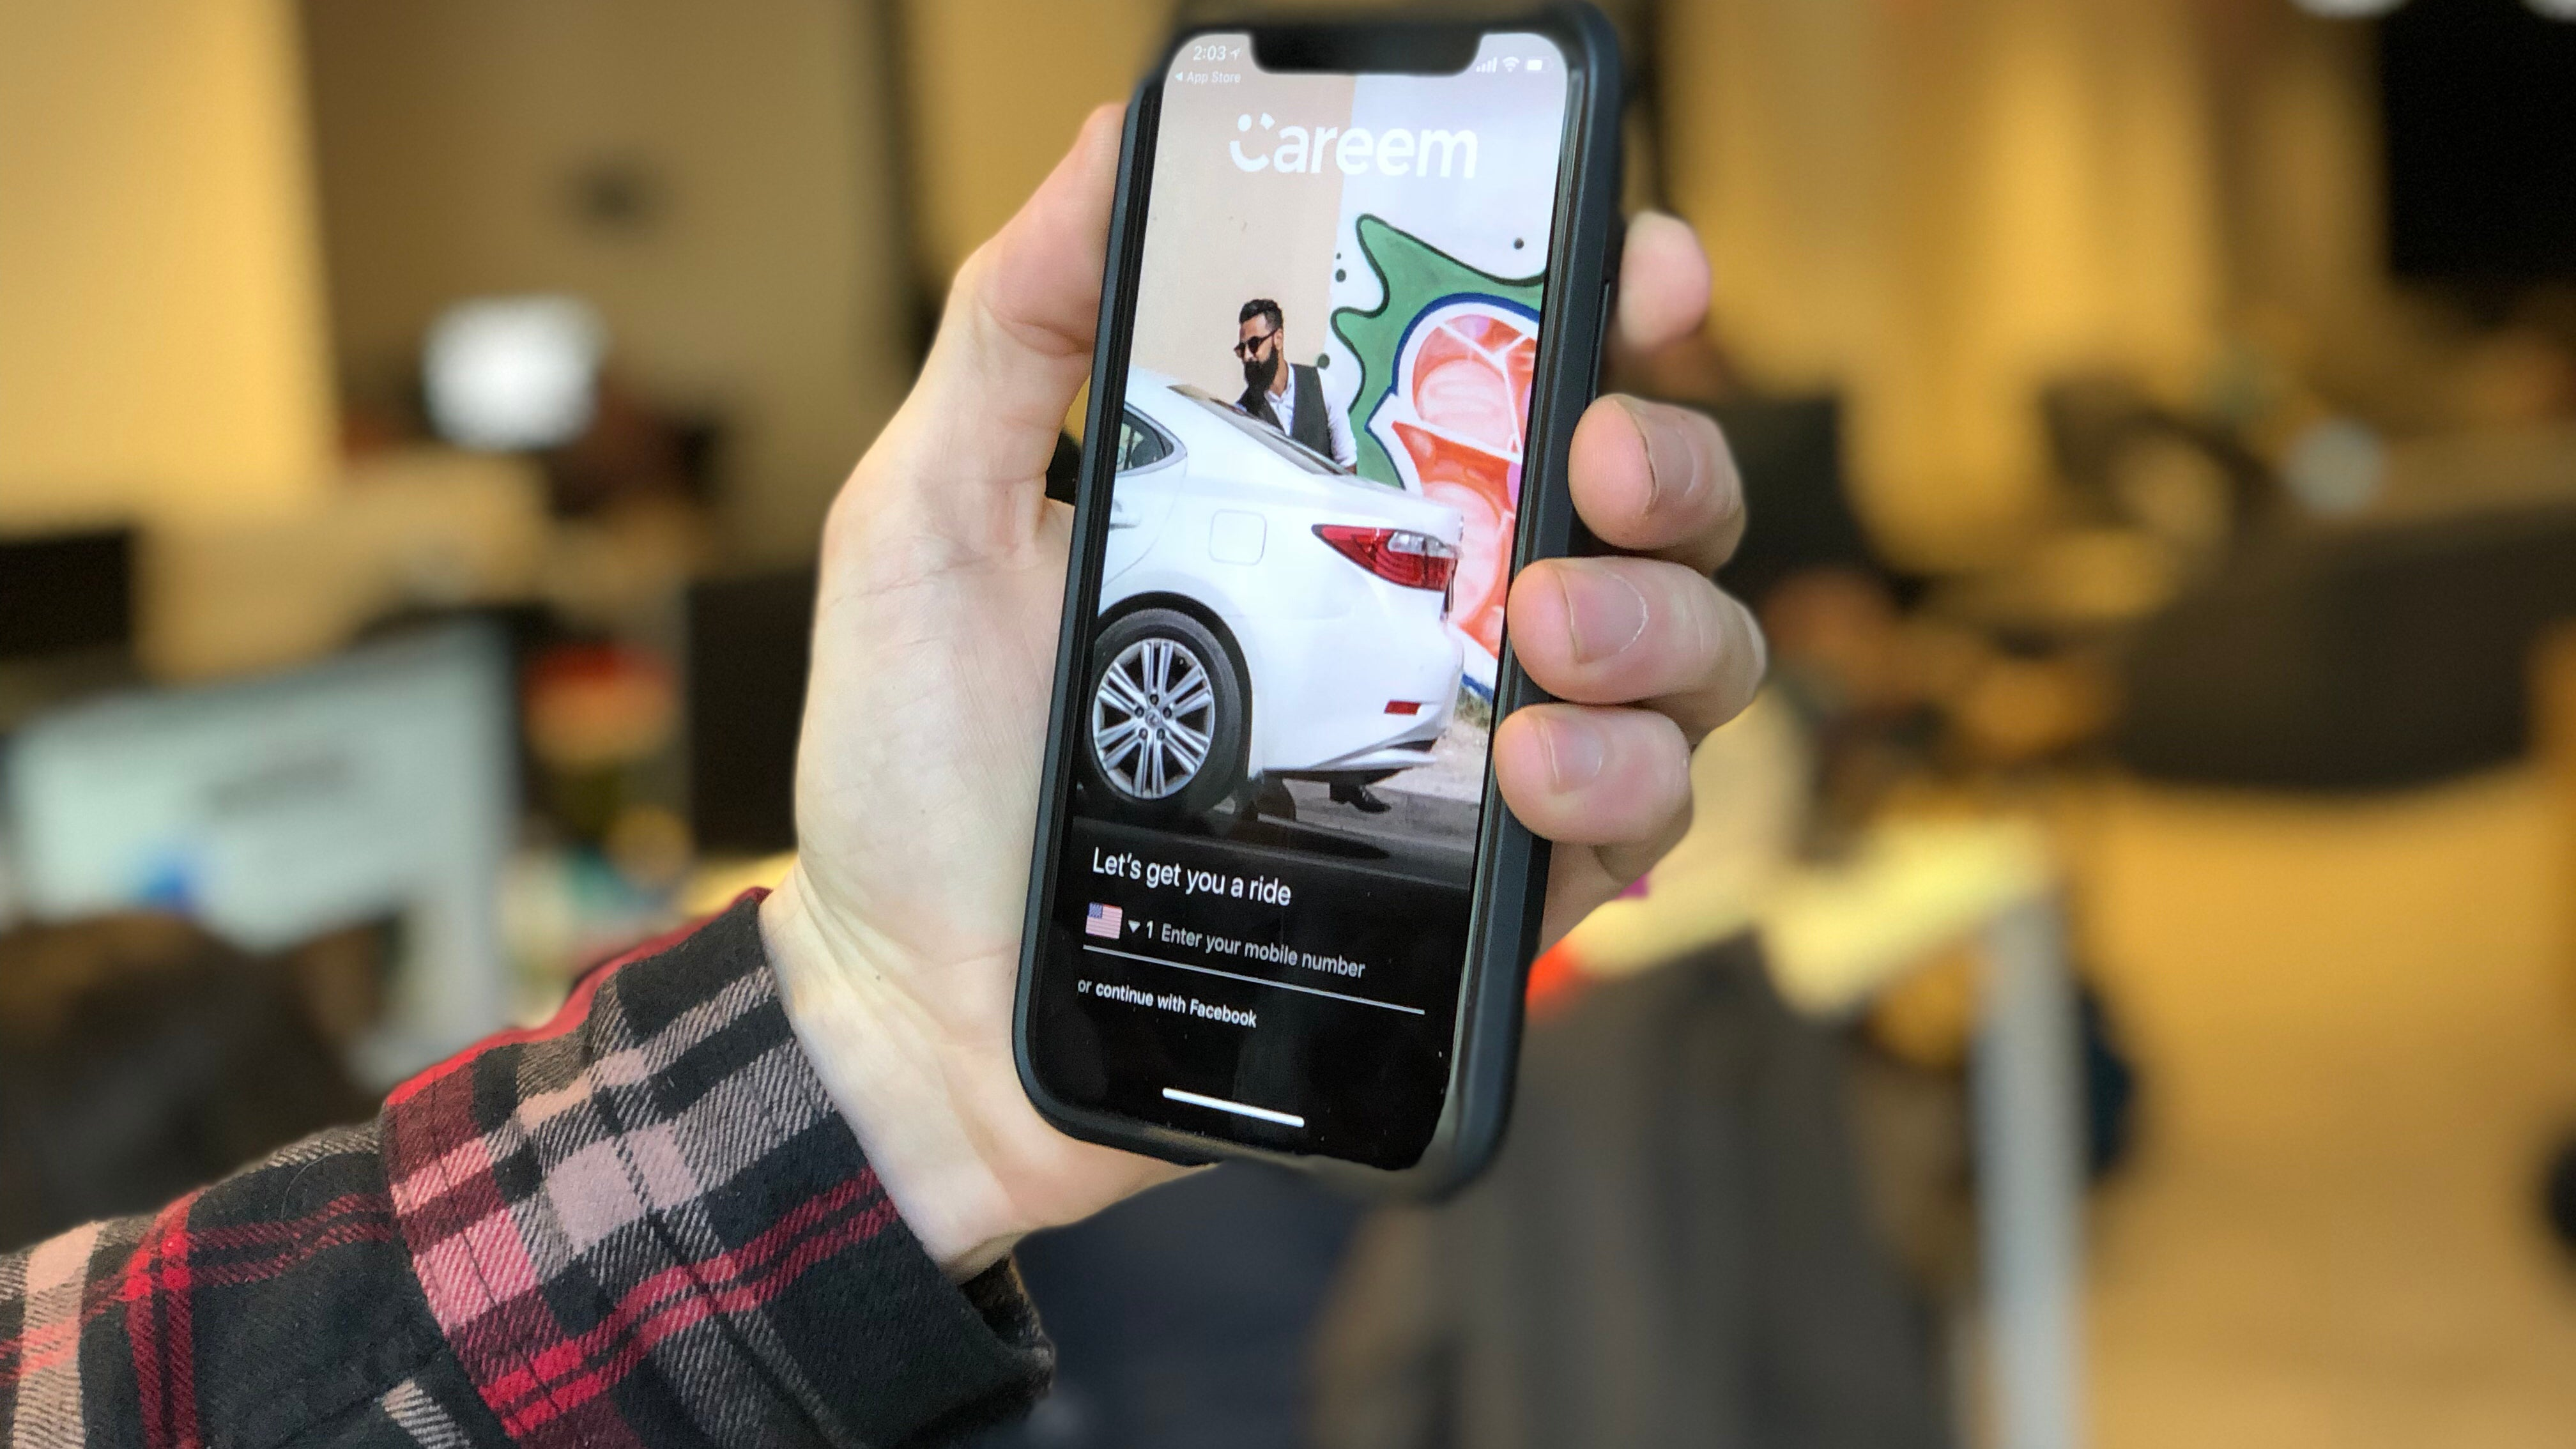 Hackers Steal Data On 14 Million Users From Ride-Hail App Careem